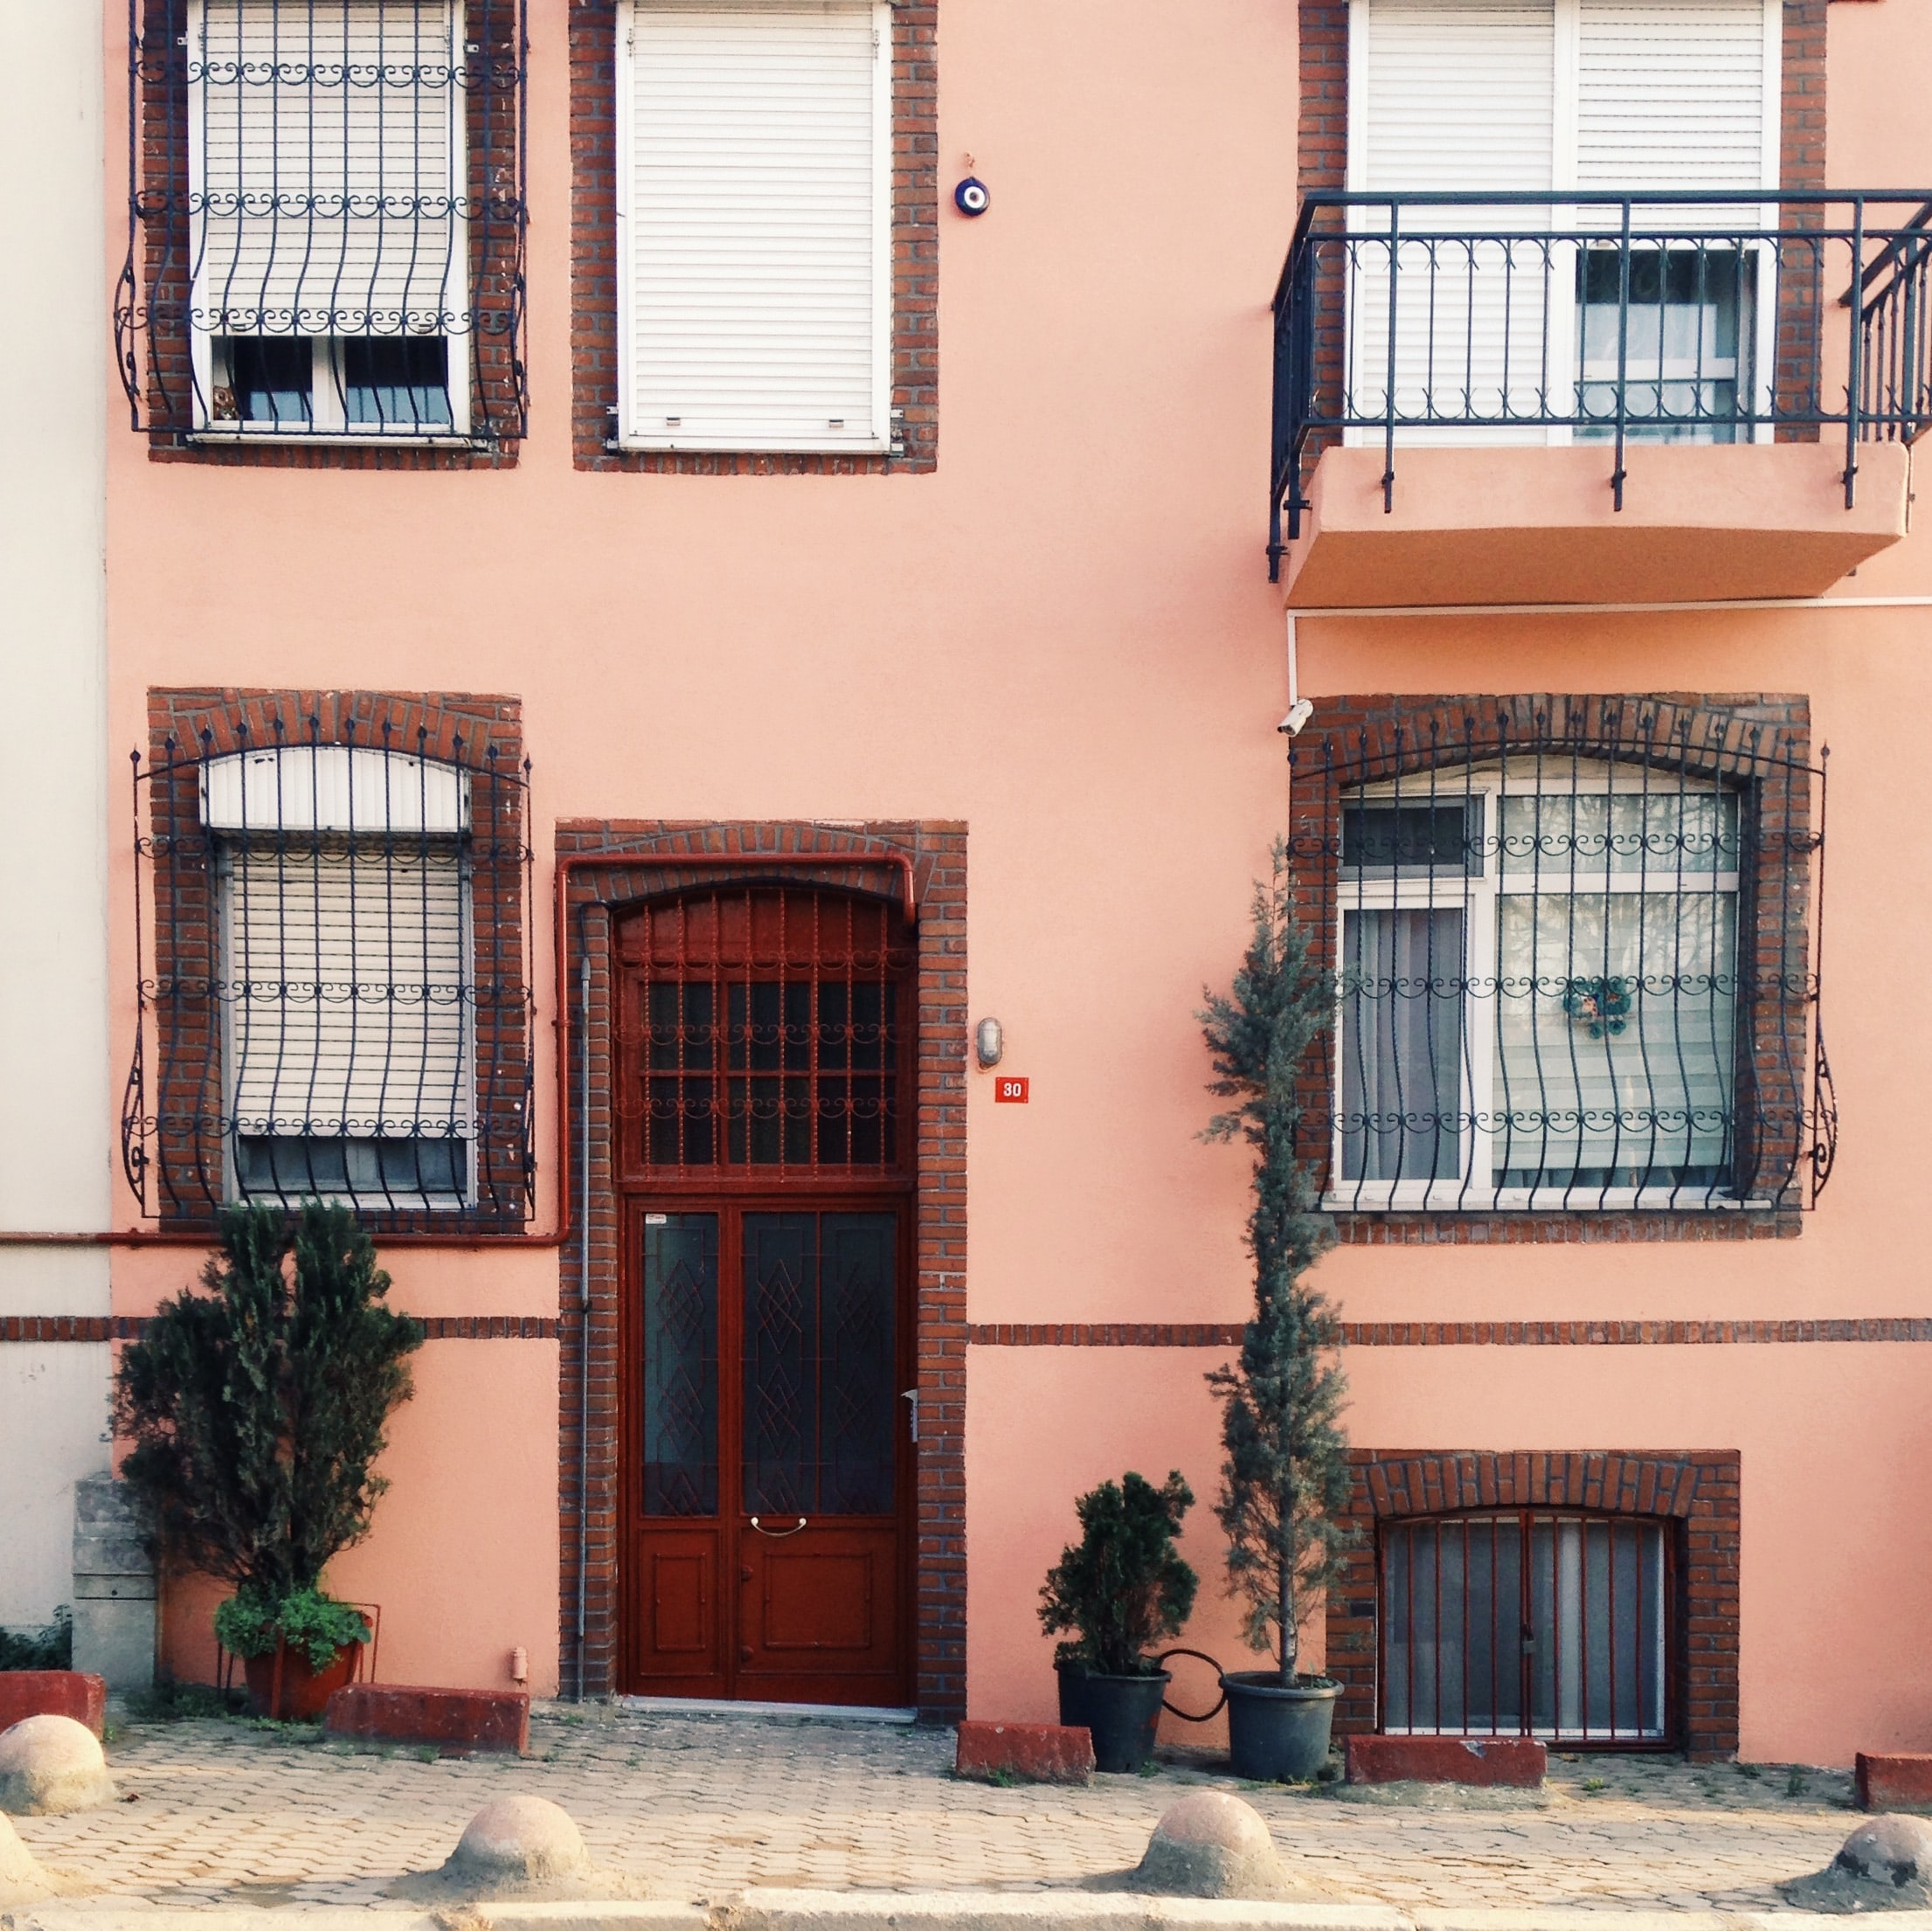 Salmon pink house with red door and barred windows behind cobblestone street